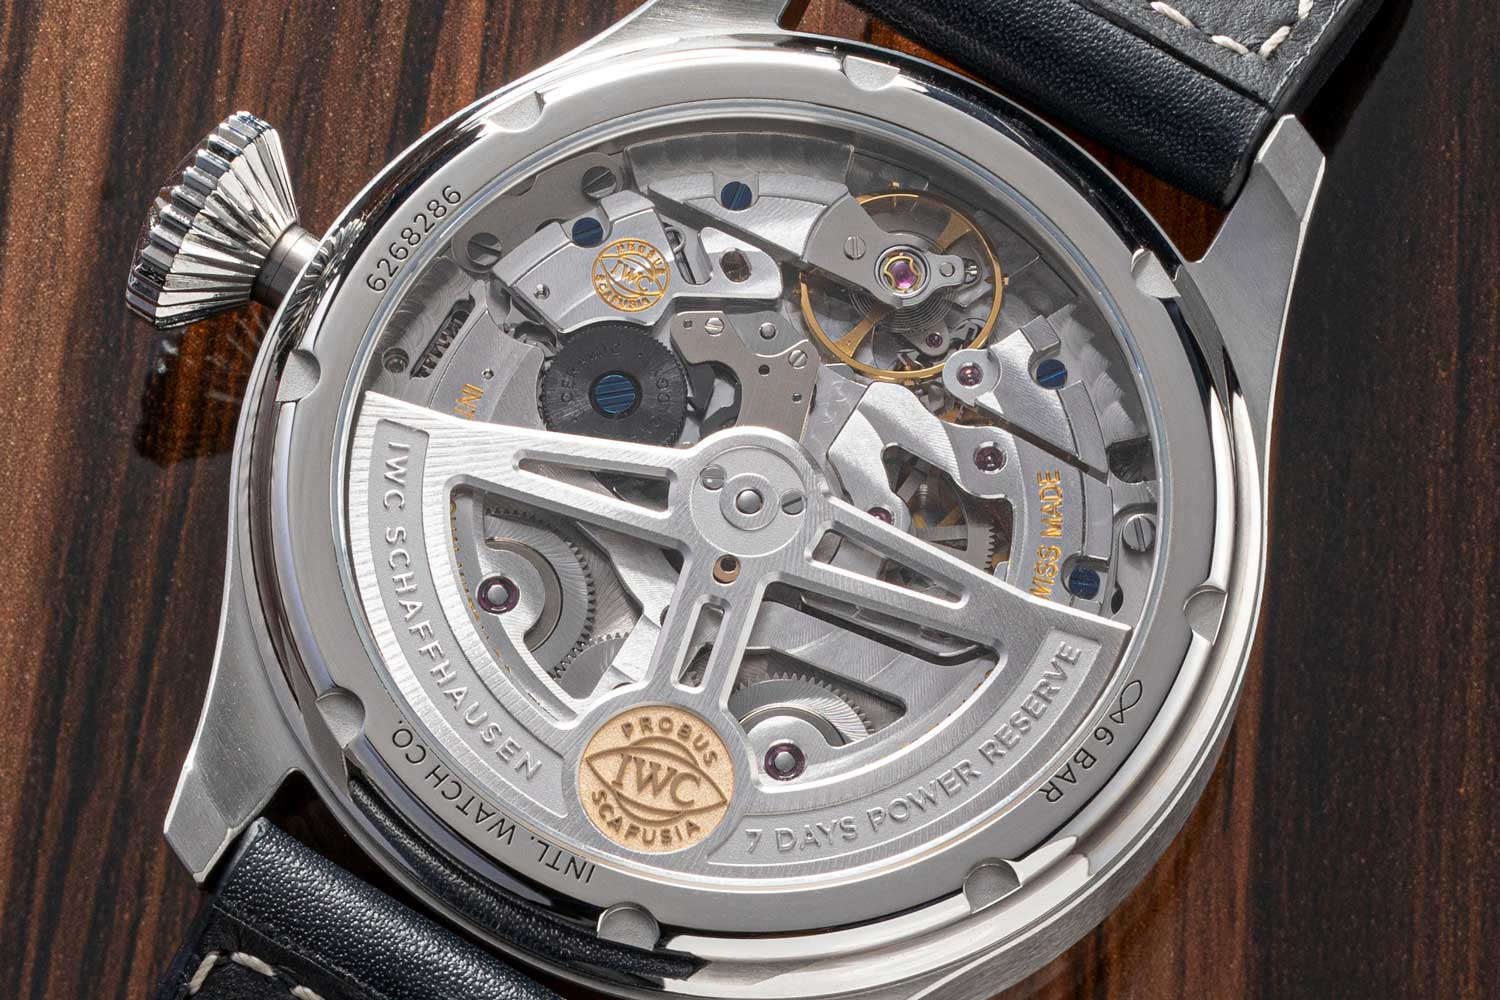 Calibre 52615 features the classic Pellaton automatic winding system with an elegant pawl design that delivers 7 days of power reserve.(Image: Revolution)